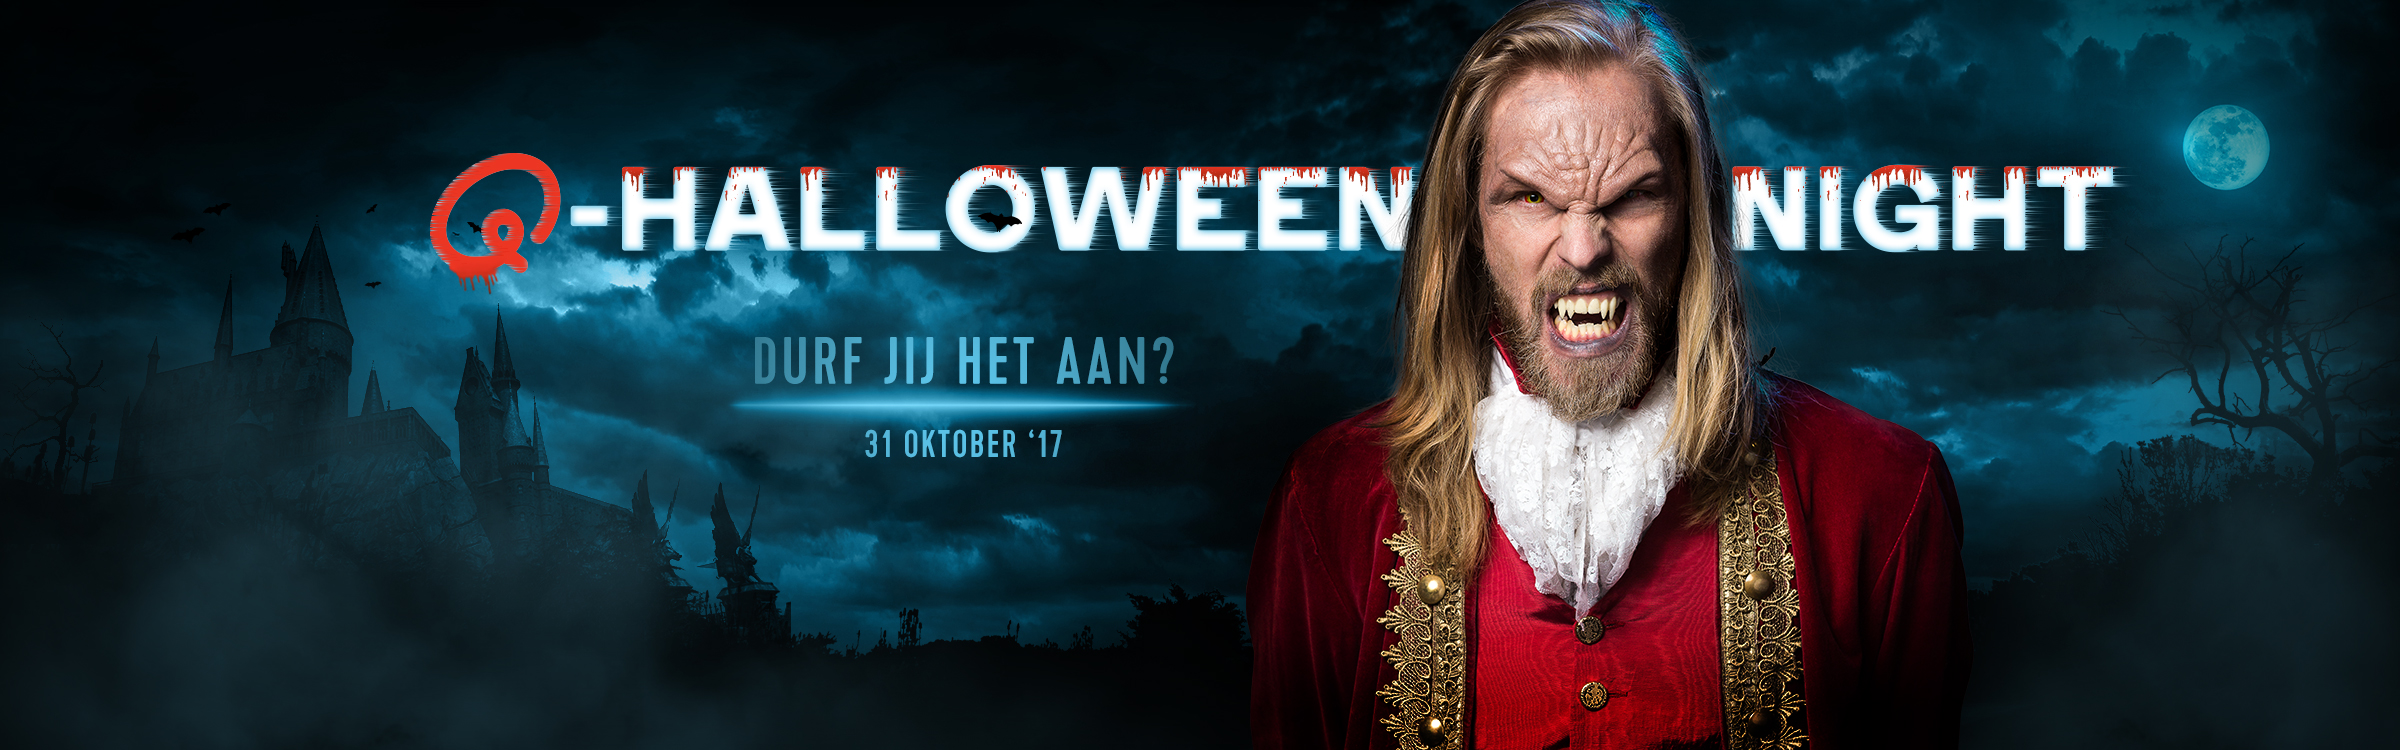 Qmusic actionheader halloween